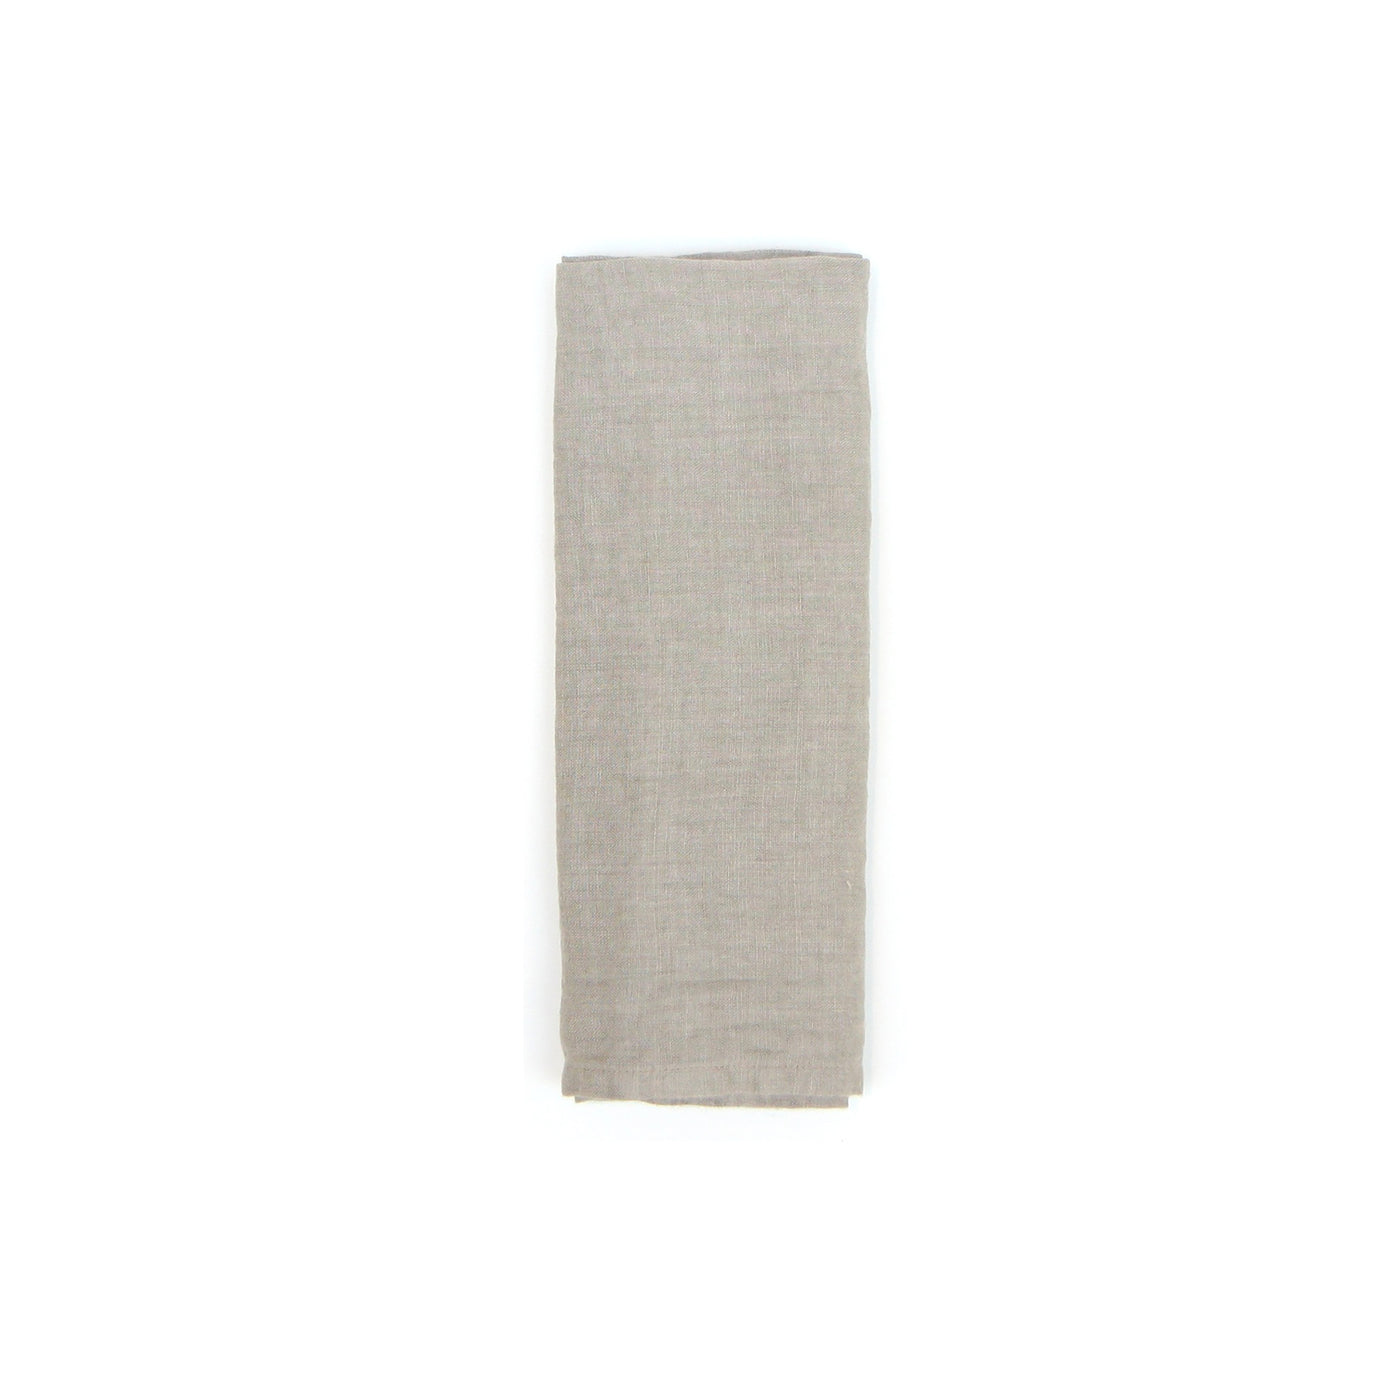 Washed Linen Napkin - Flax